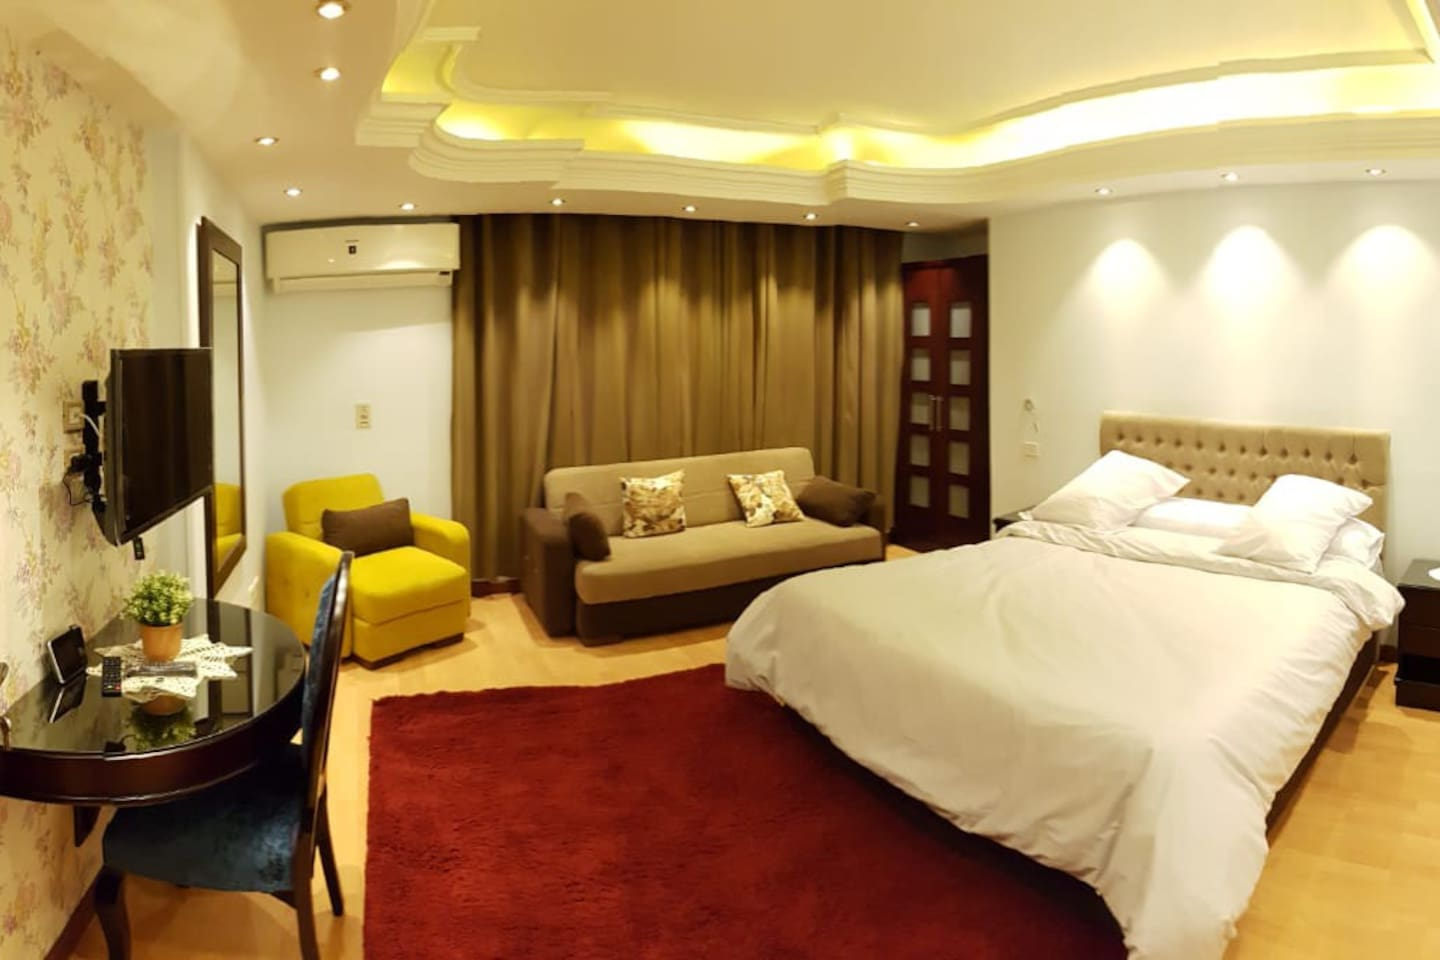 apartment Hotel  High standard of hospitality 5 S